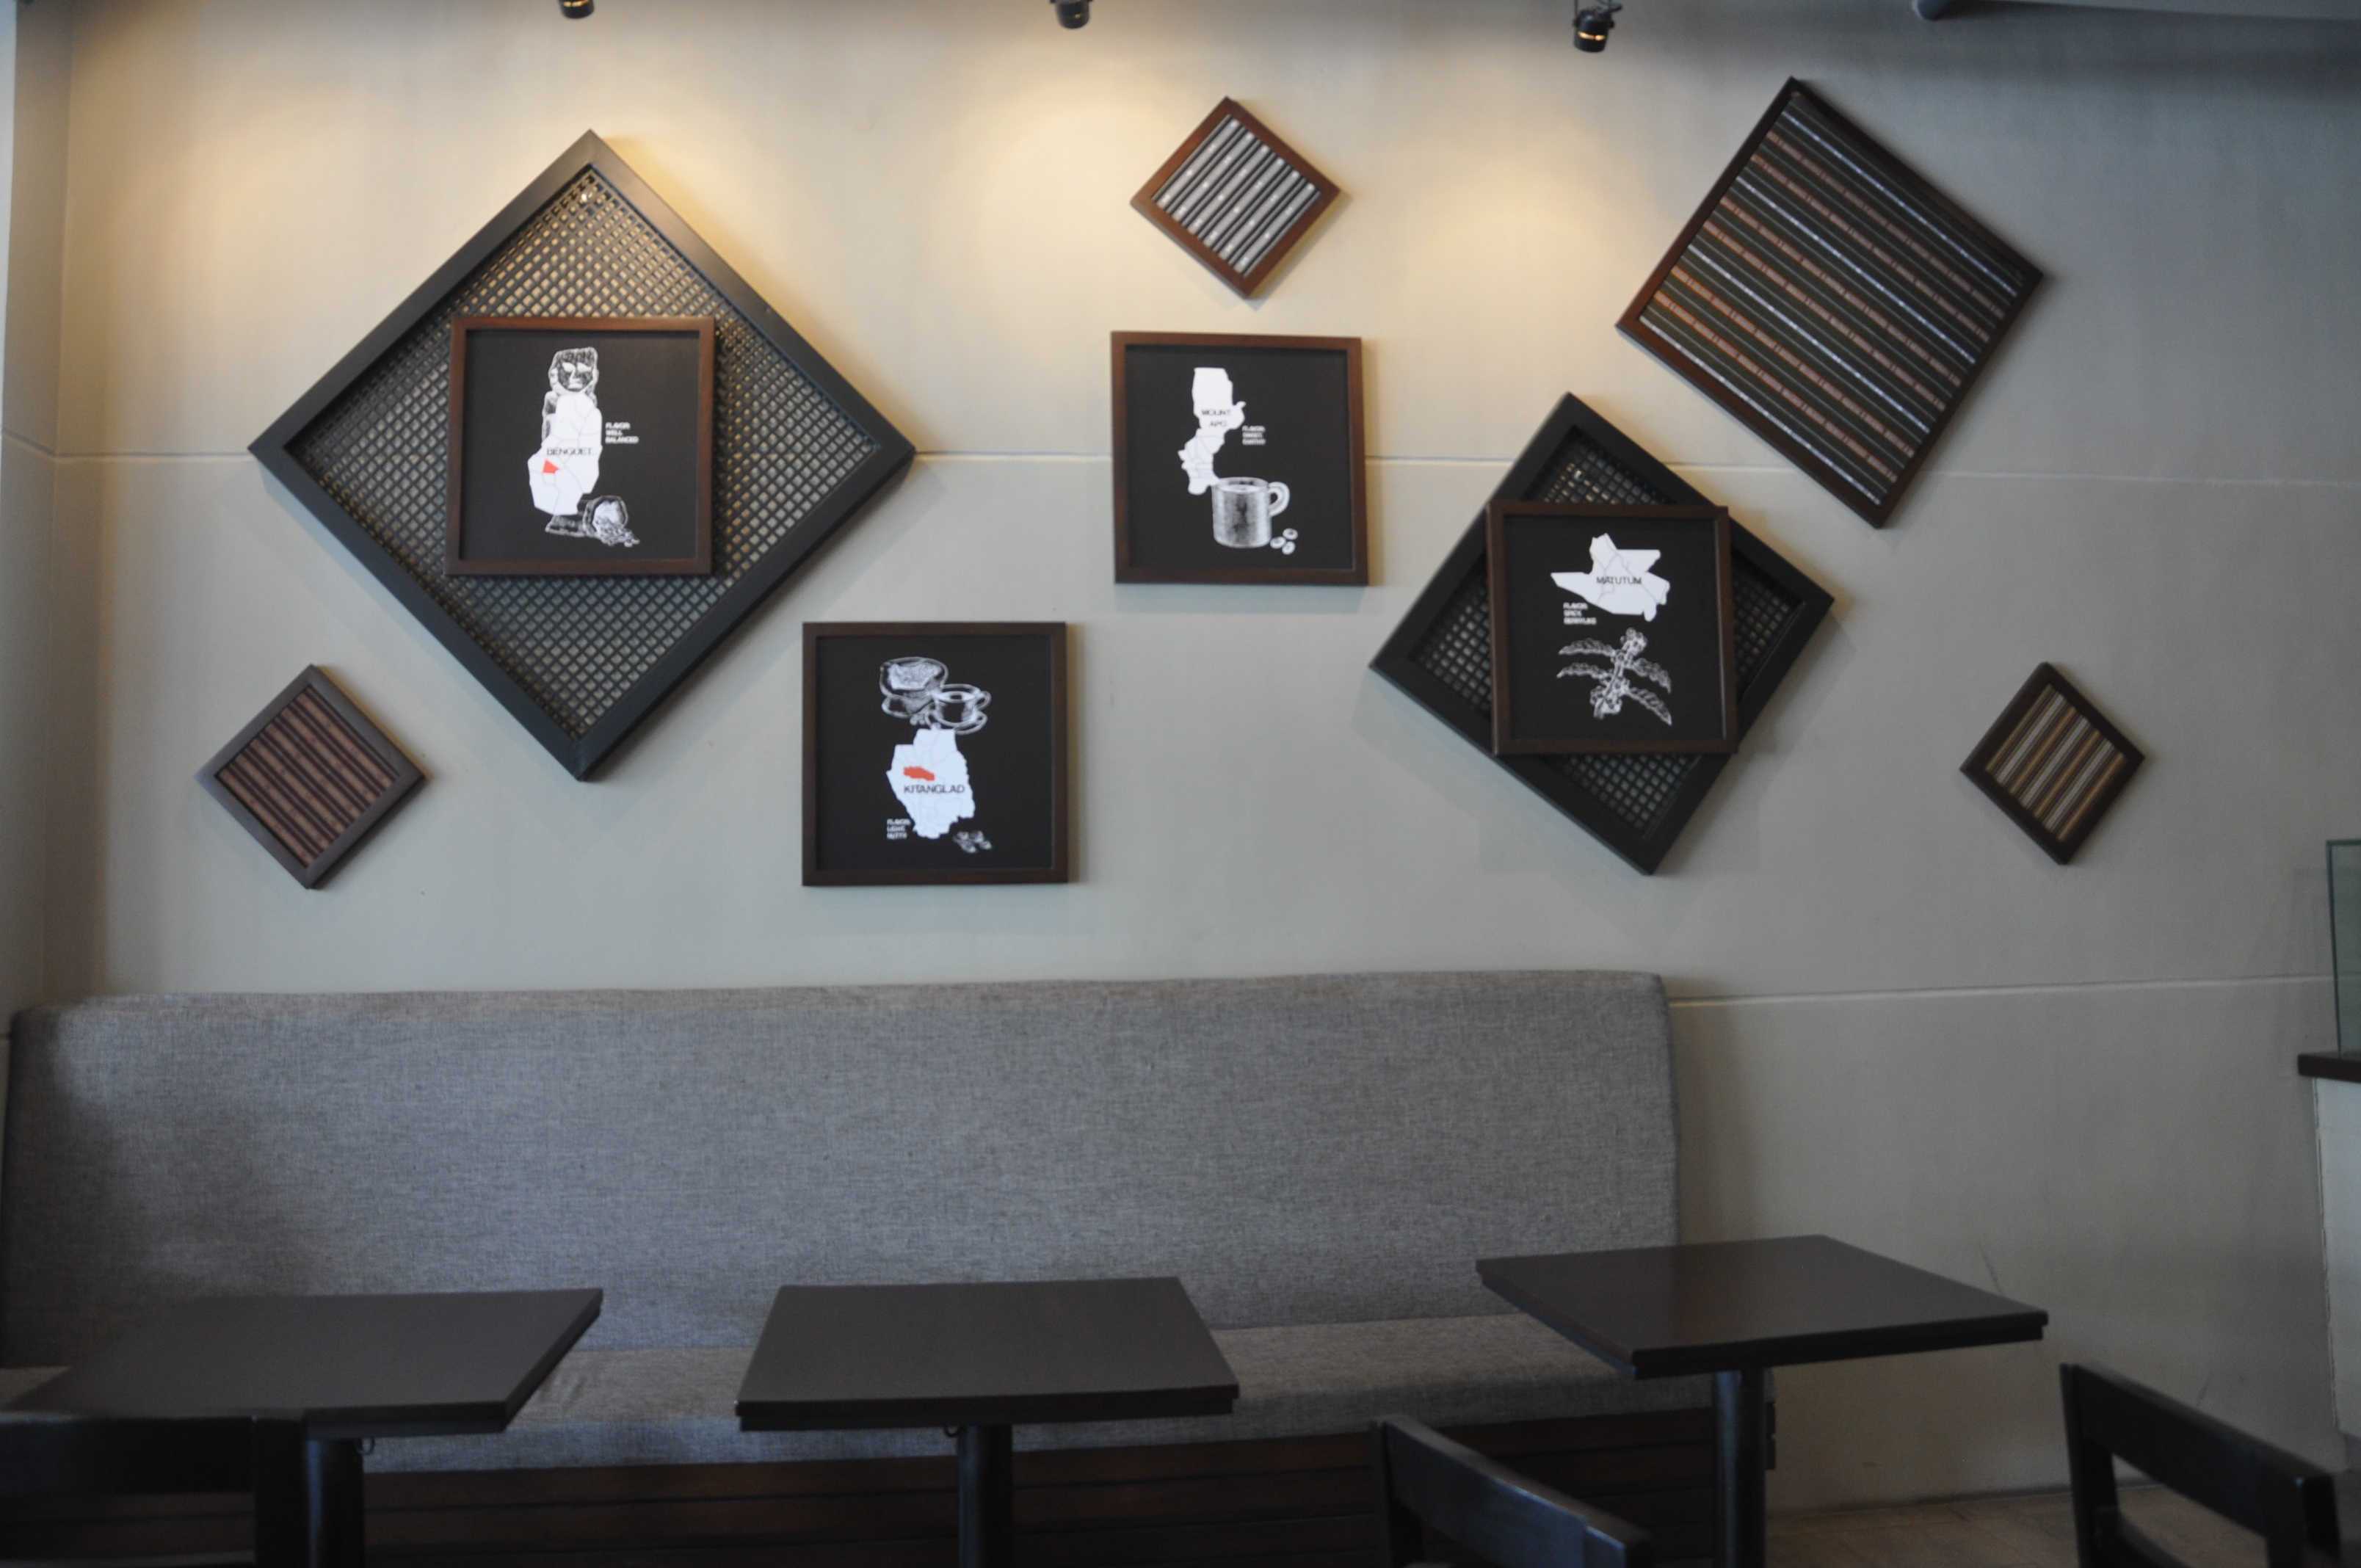 Each store of Bo's coffee features local artistry and craft. The chandeliers are designed by world-famous designer Kenneth Cobonpue while the chairs are colorfully upholstered by ANTHILL Fabric Gallery.